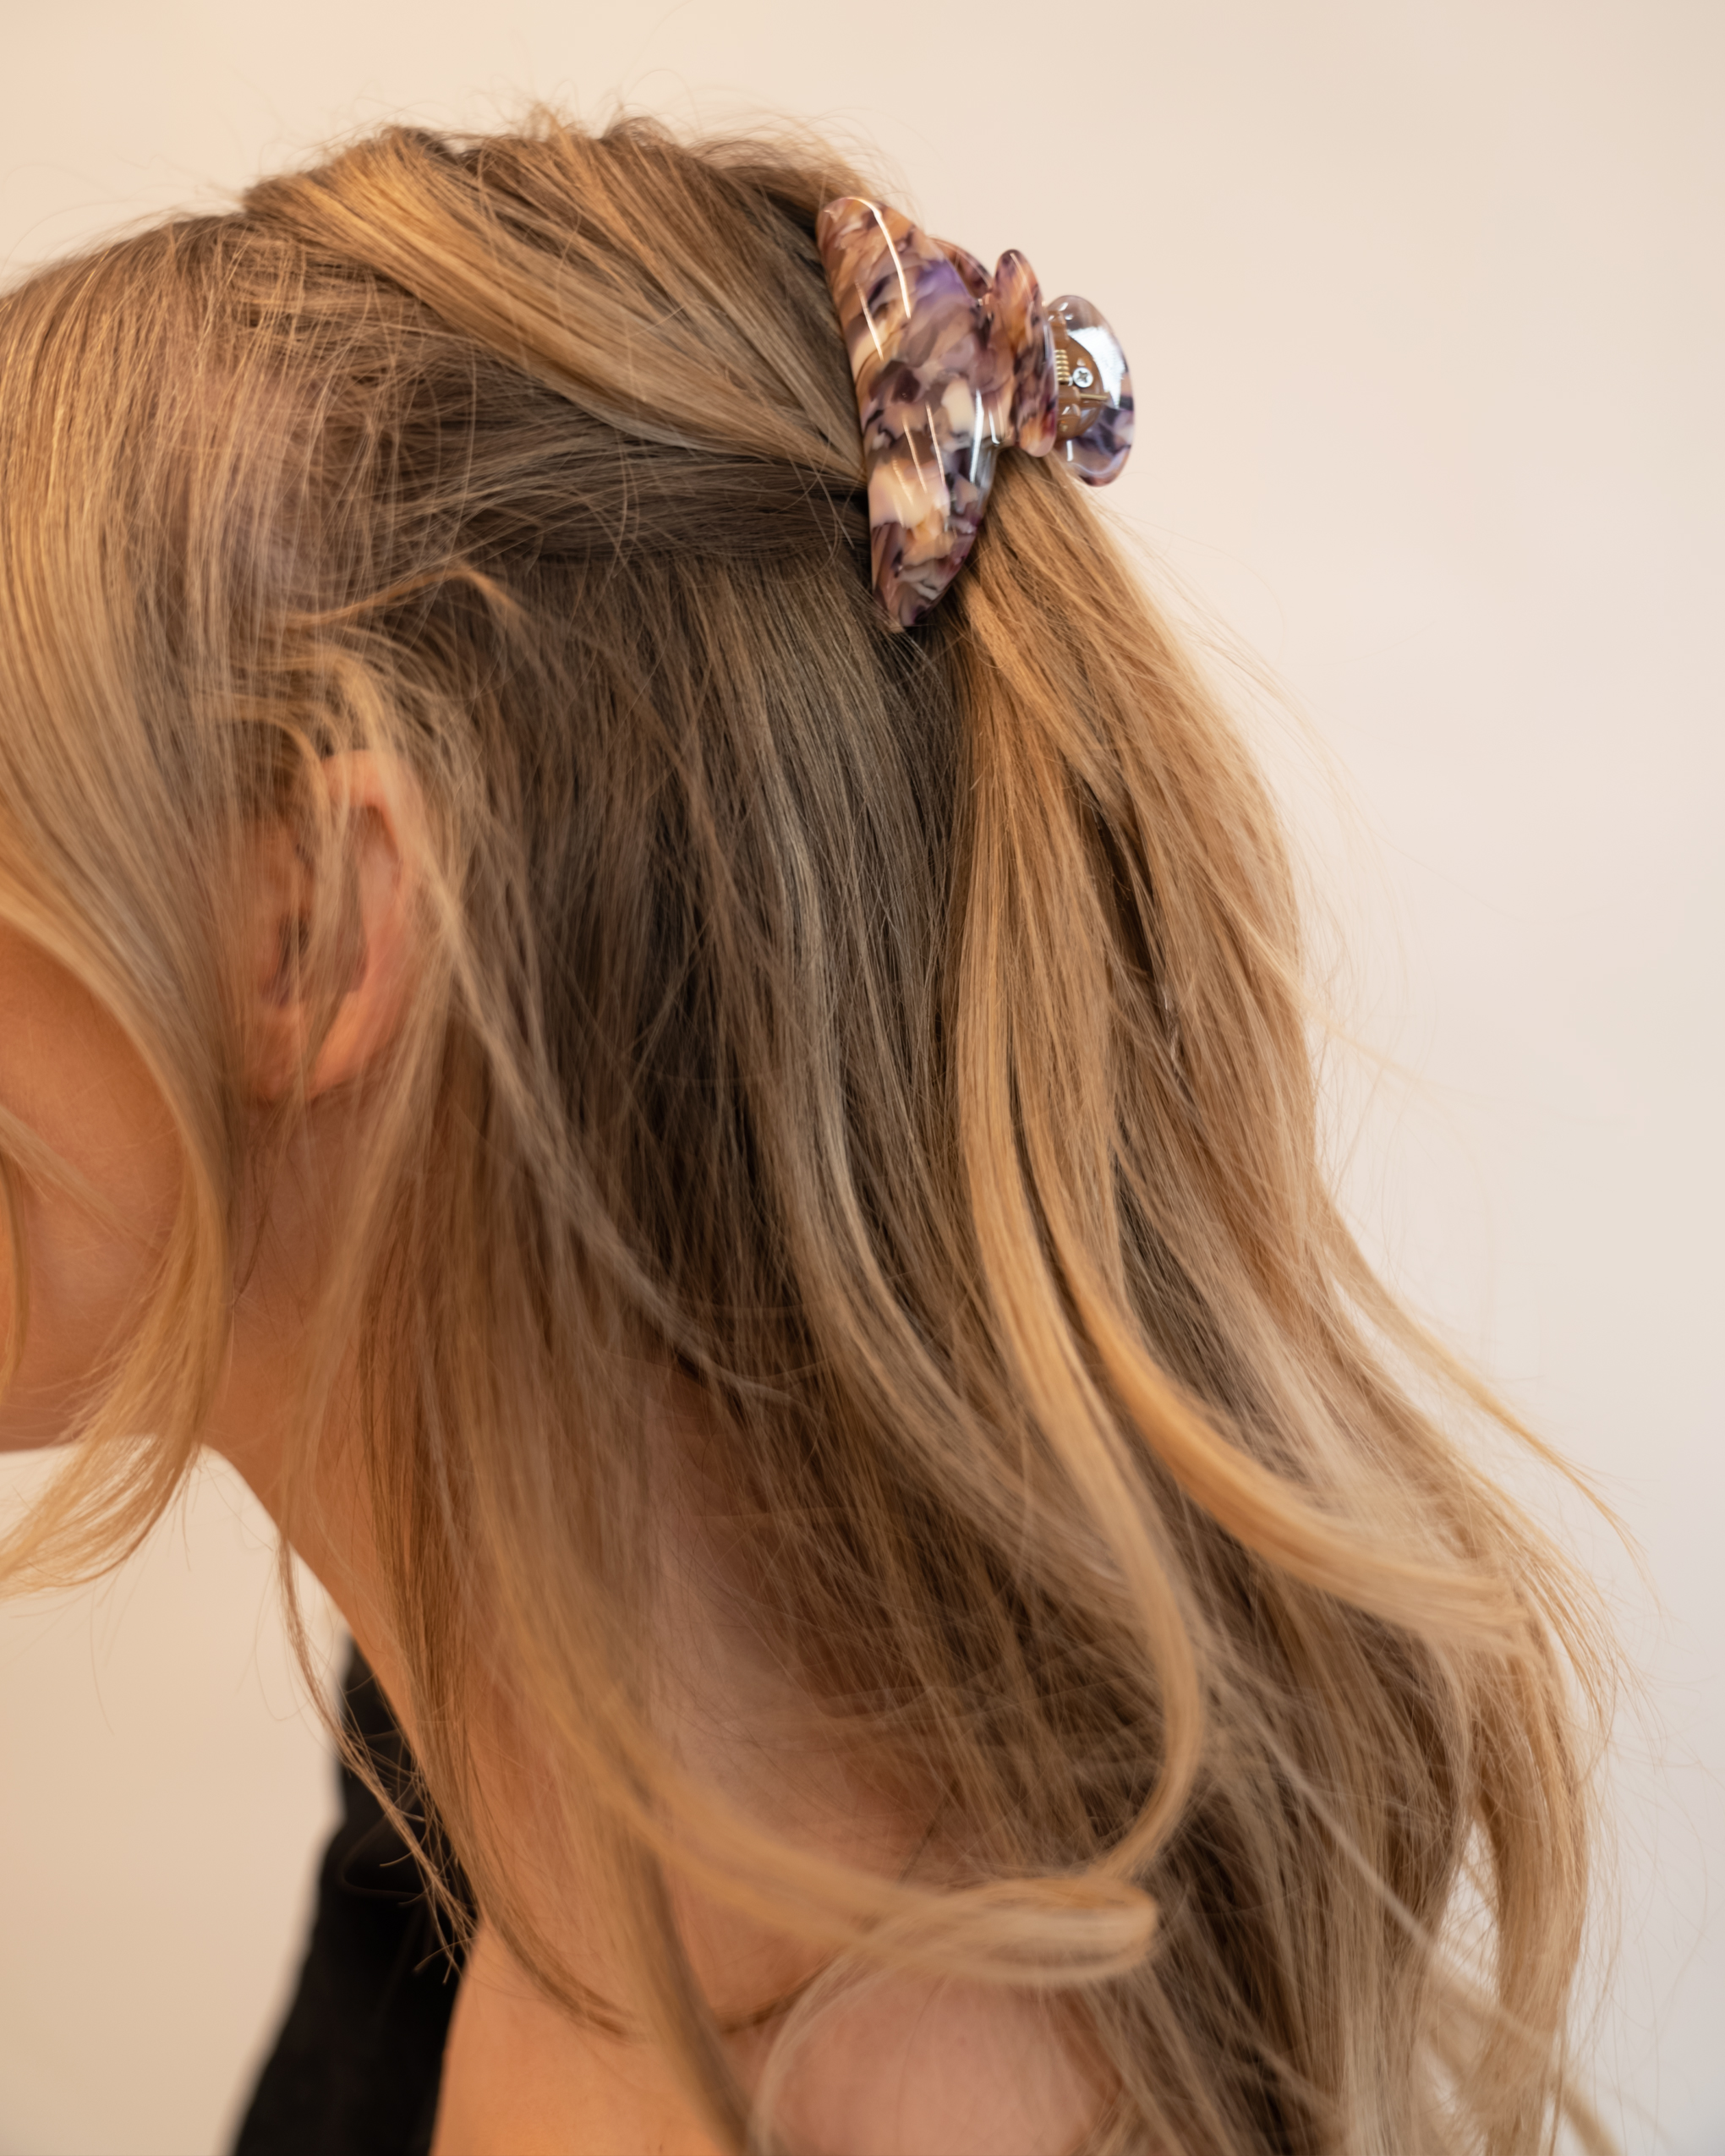 Model wearing Emin + Paul orchid crescent hair claw.